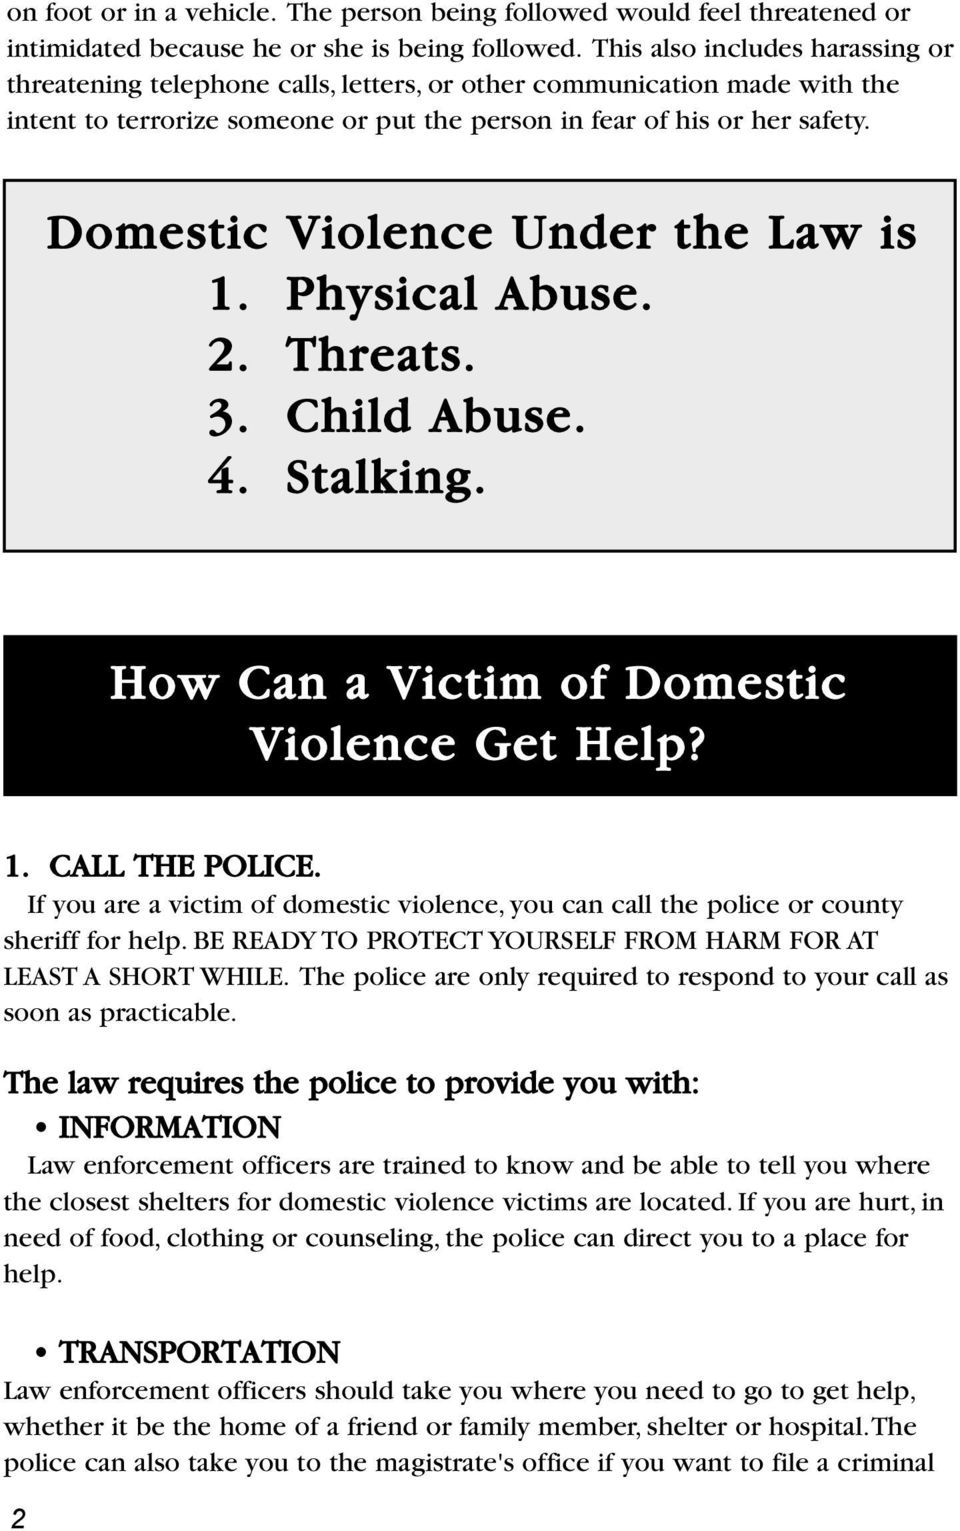 Domestic Violence Under the Law is 1. Physical Abuse. 2. Threats. 3. Child Abuse. 4. Stalking. How Can a Victim of Domestic Violence Get Help? 1. CALL THE POLICE.